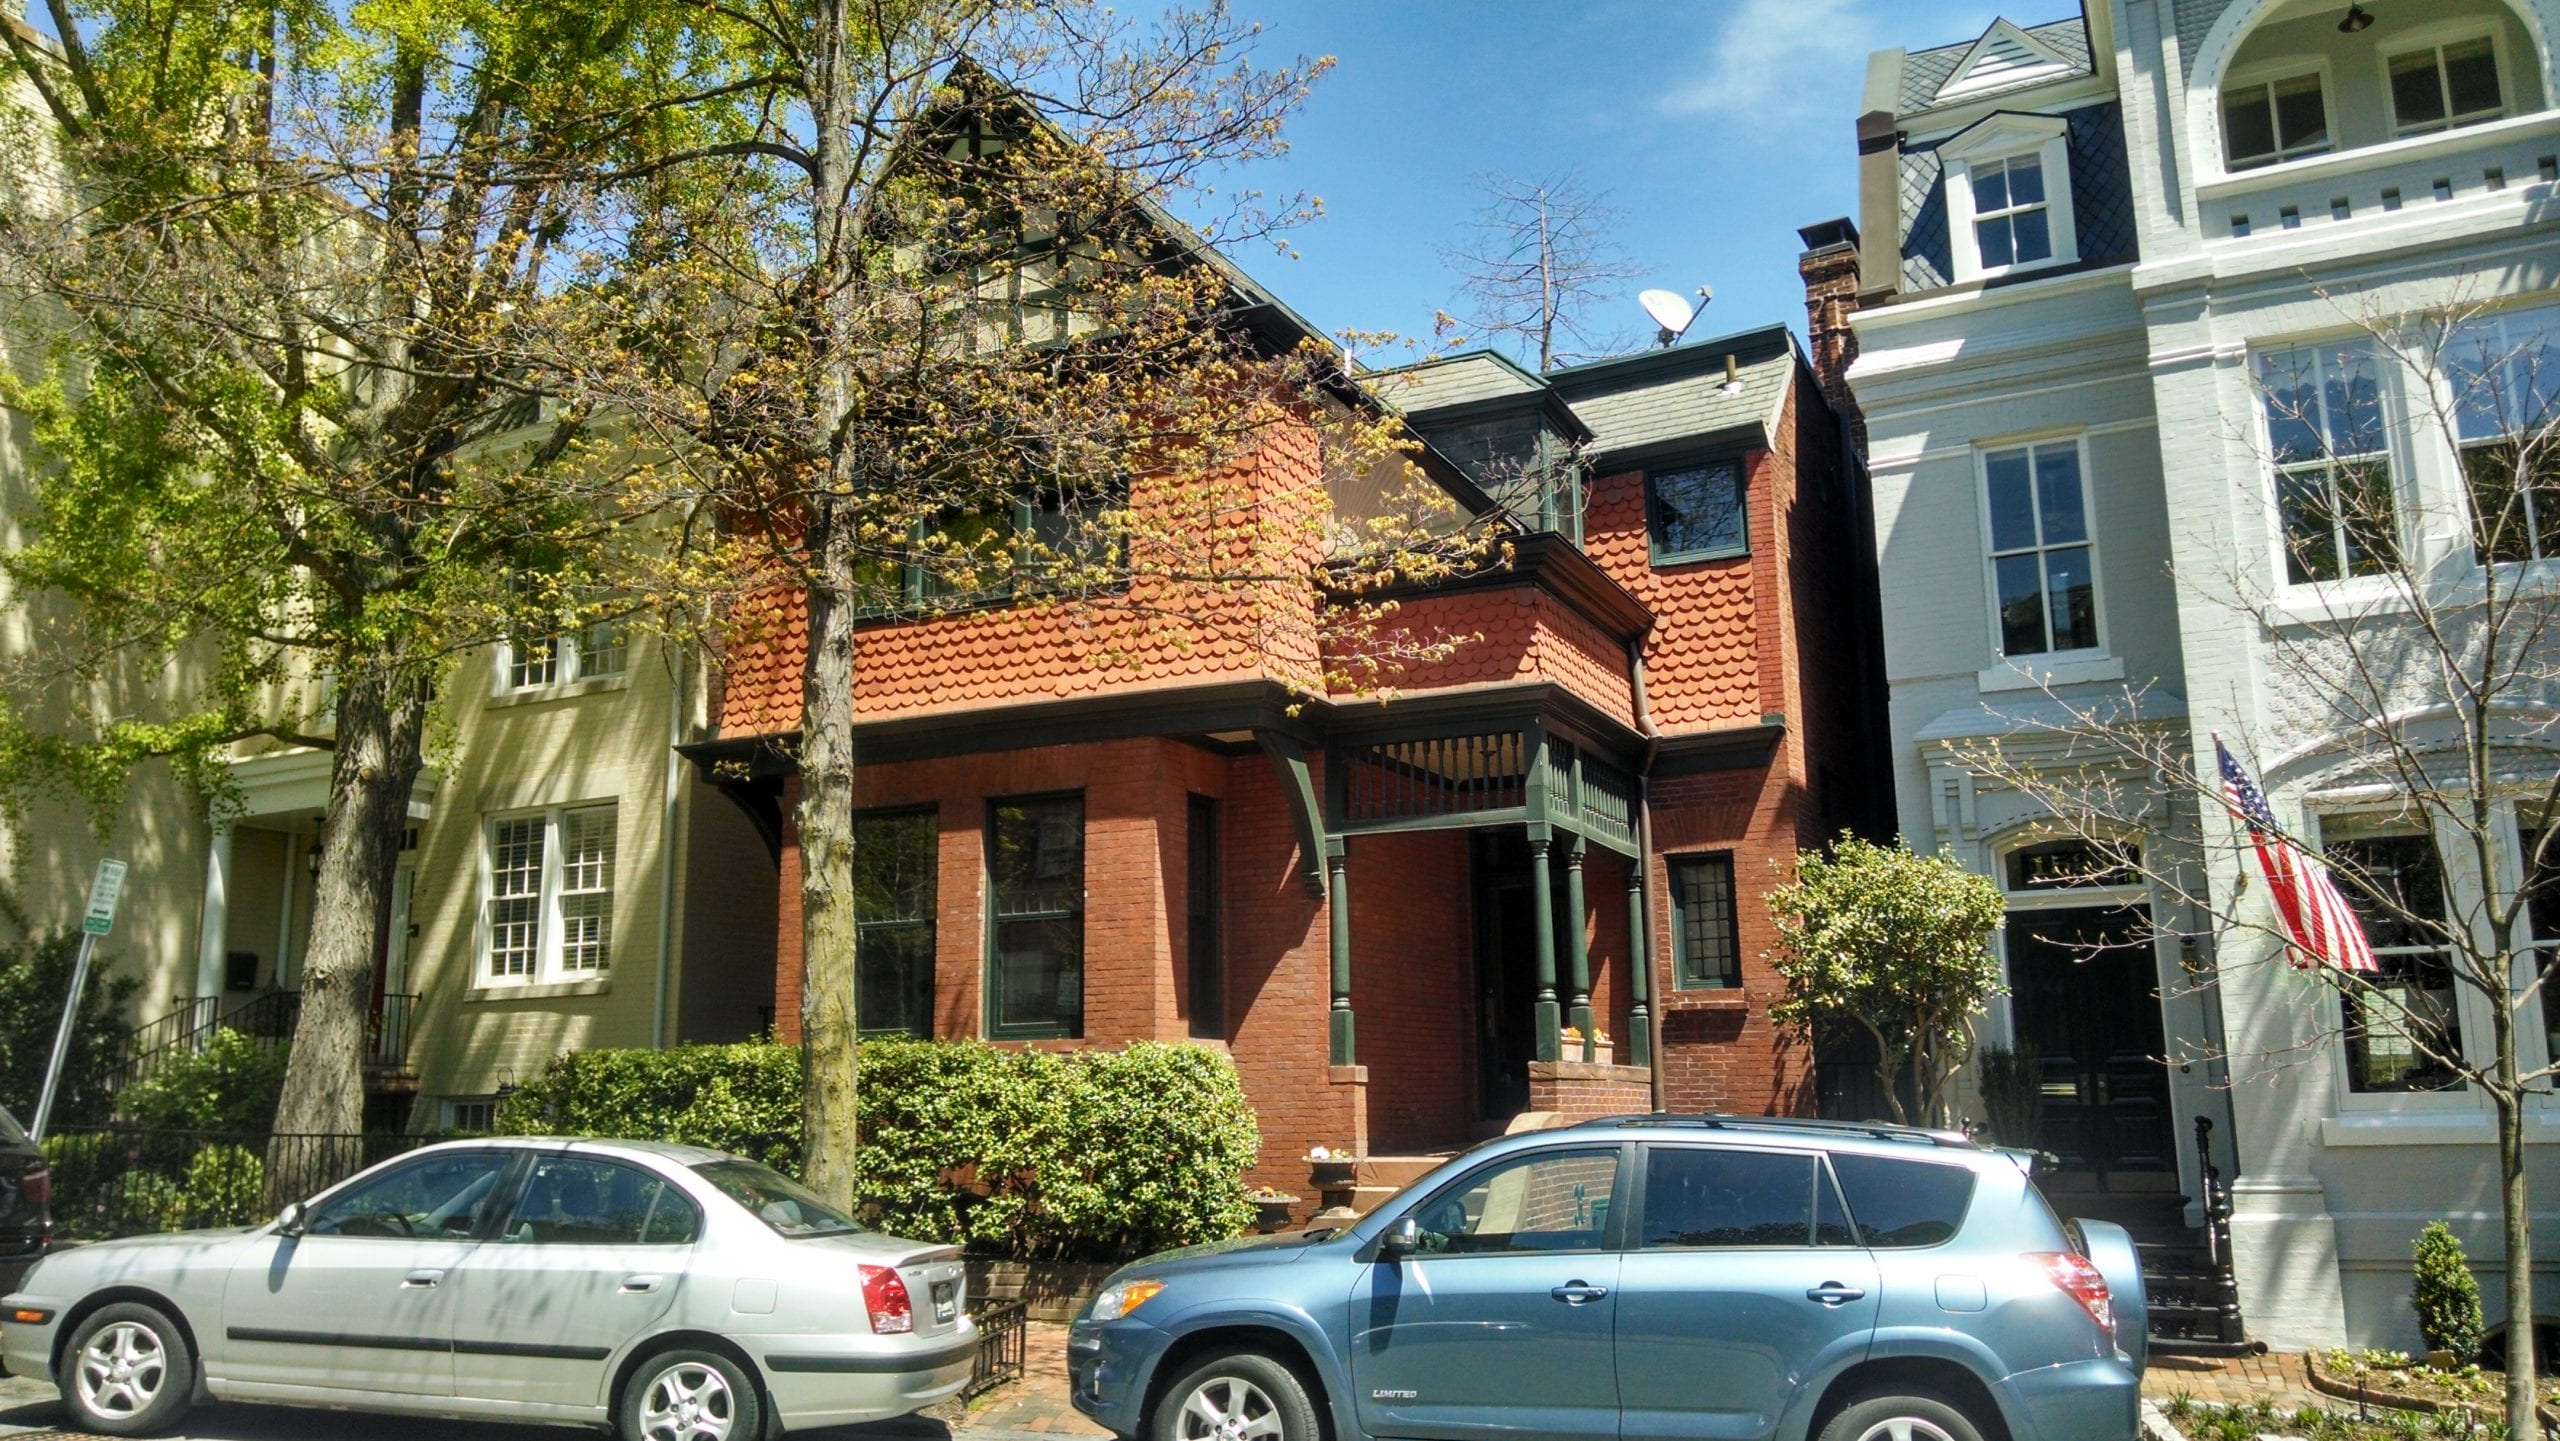 If Walls Could Talk: Georgetown's Breiding House at 1523 31st St. NW